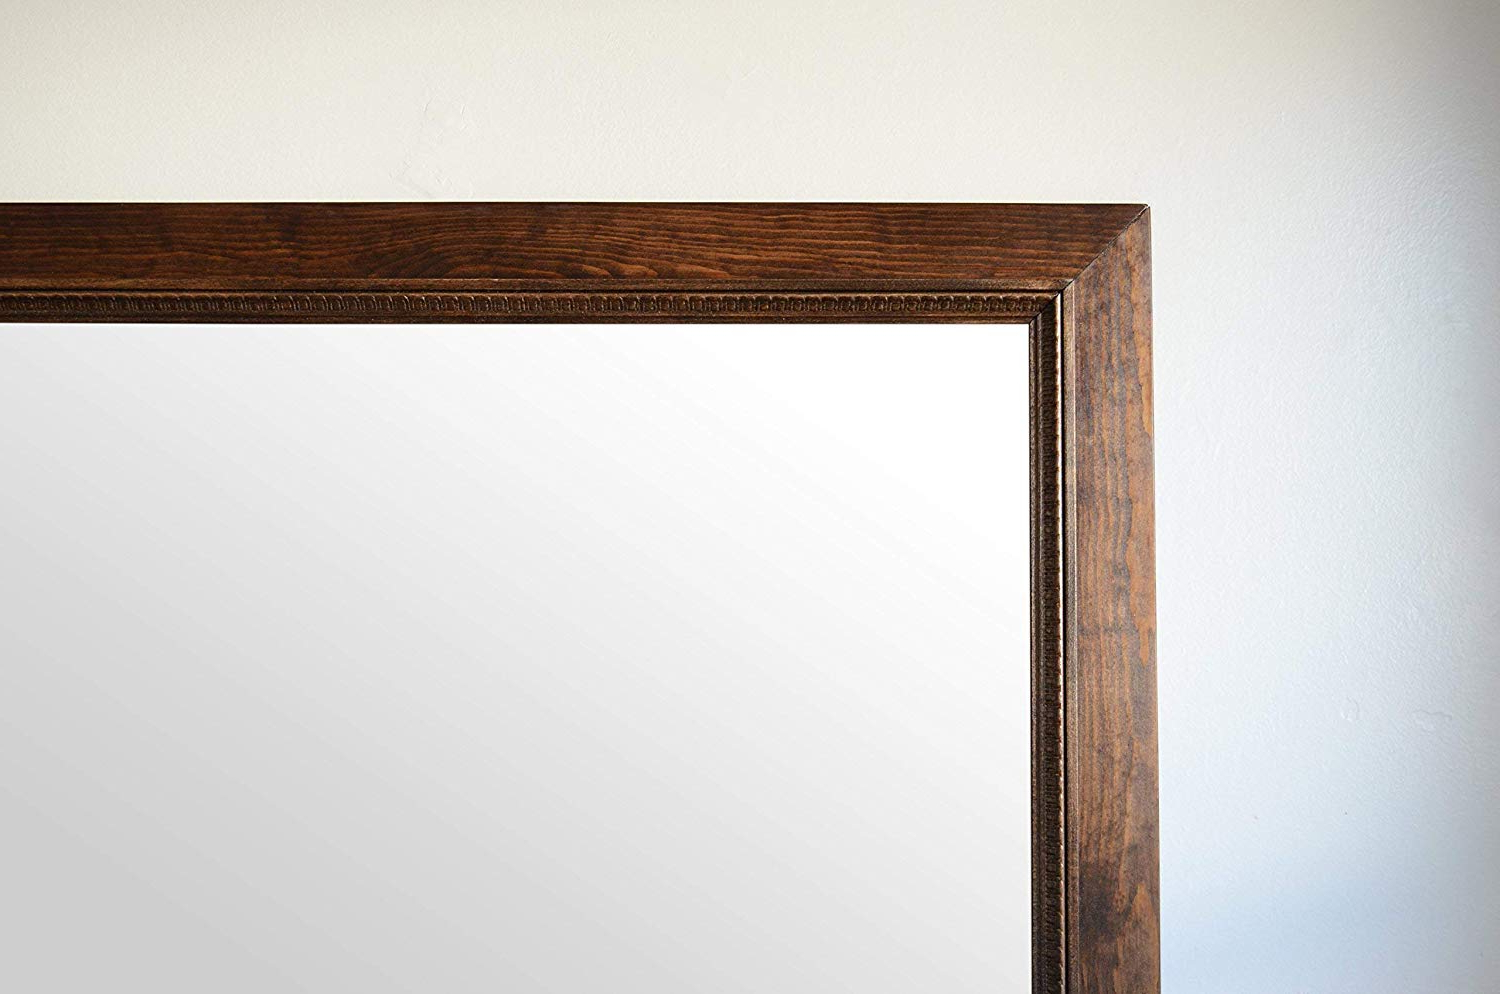 Wooden Wall Mirrors Regarding Preferred Amazon: Rustic Wooden Wall Mirror W/decorative Trim (View 17 of 20)